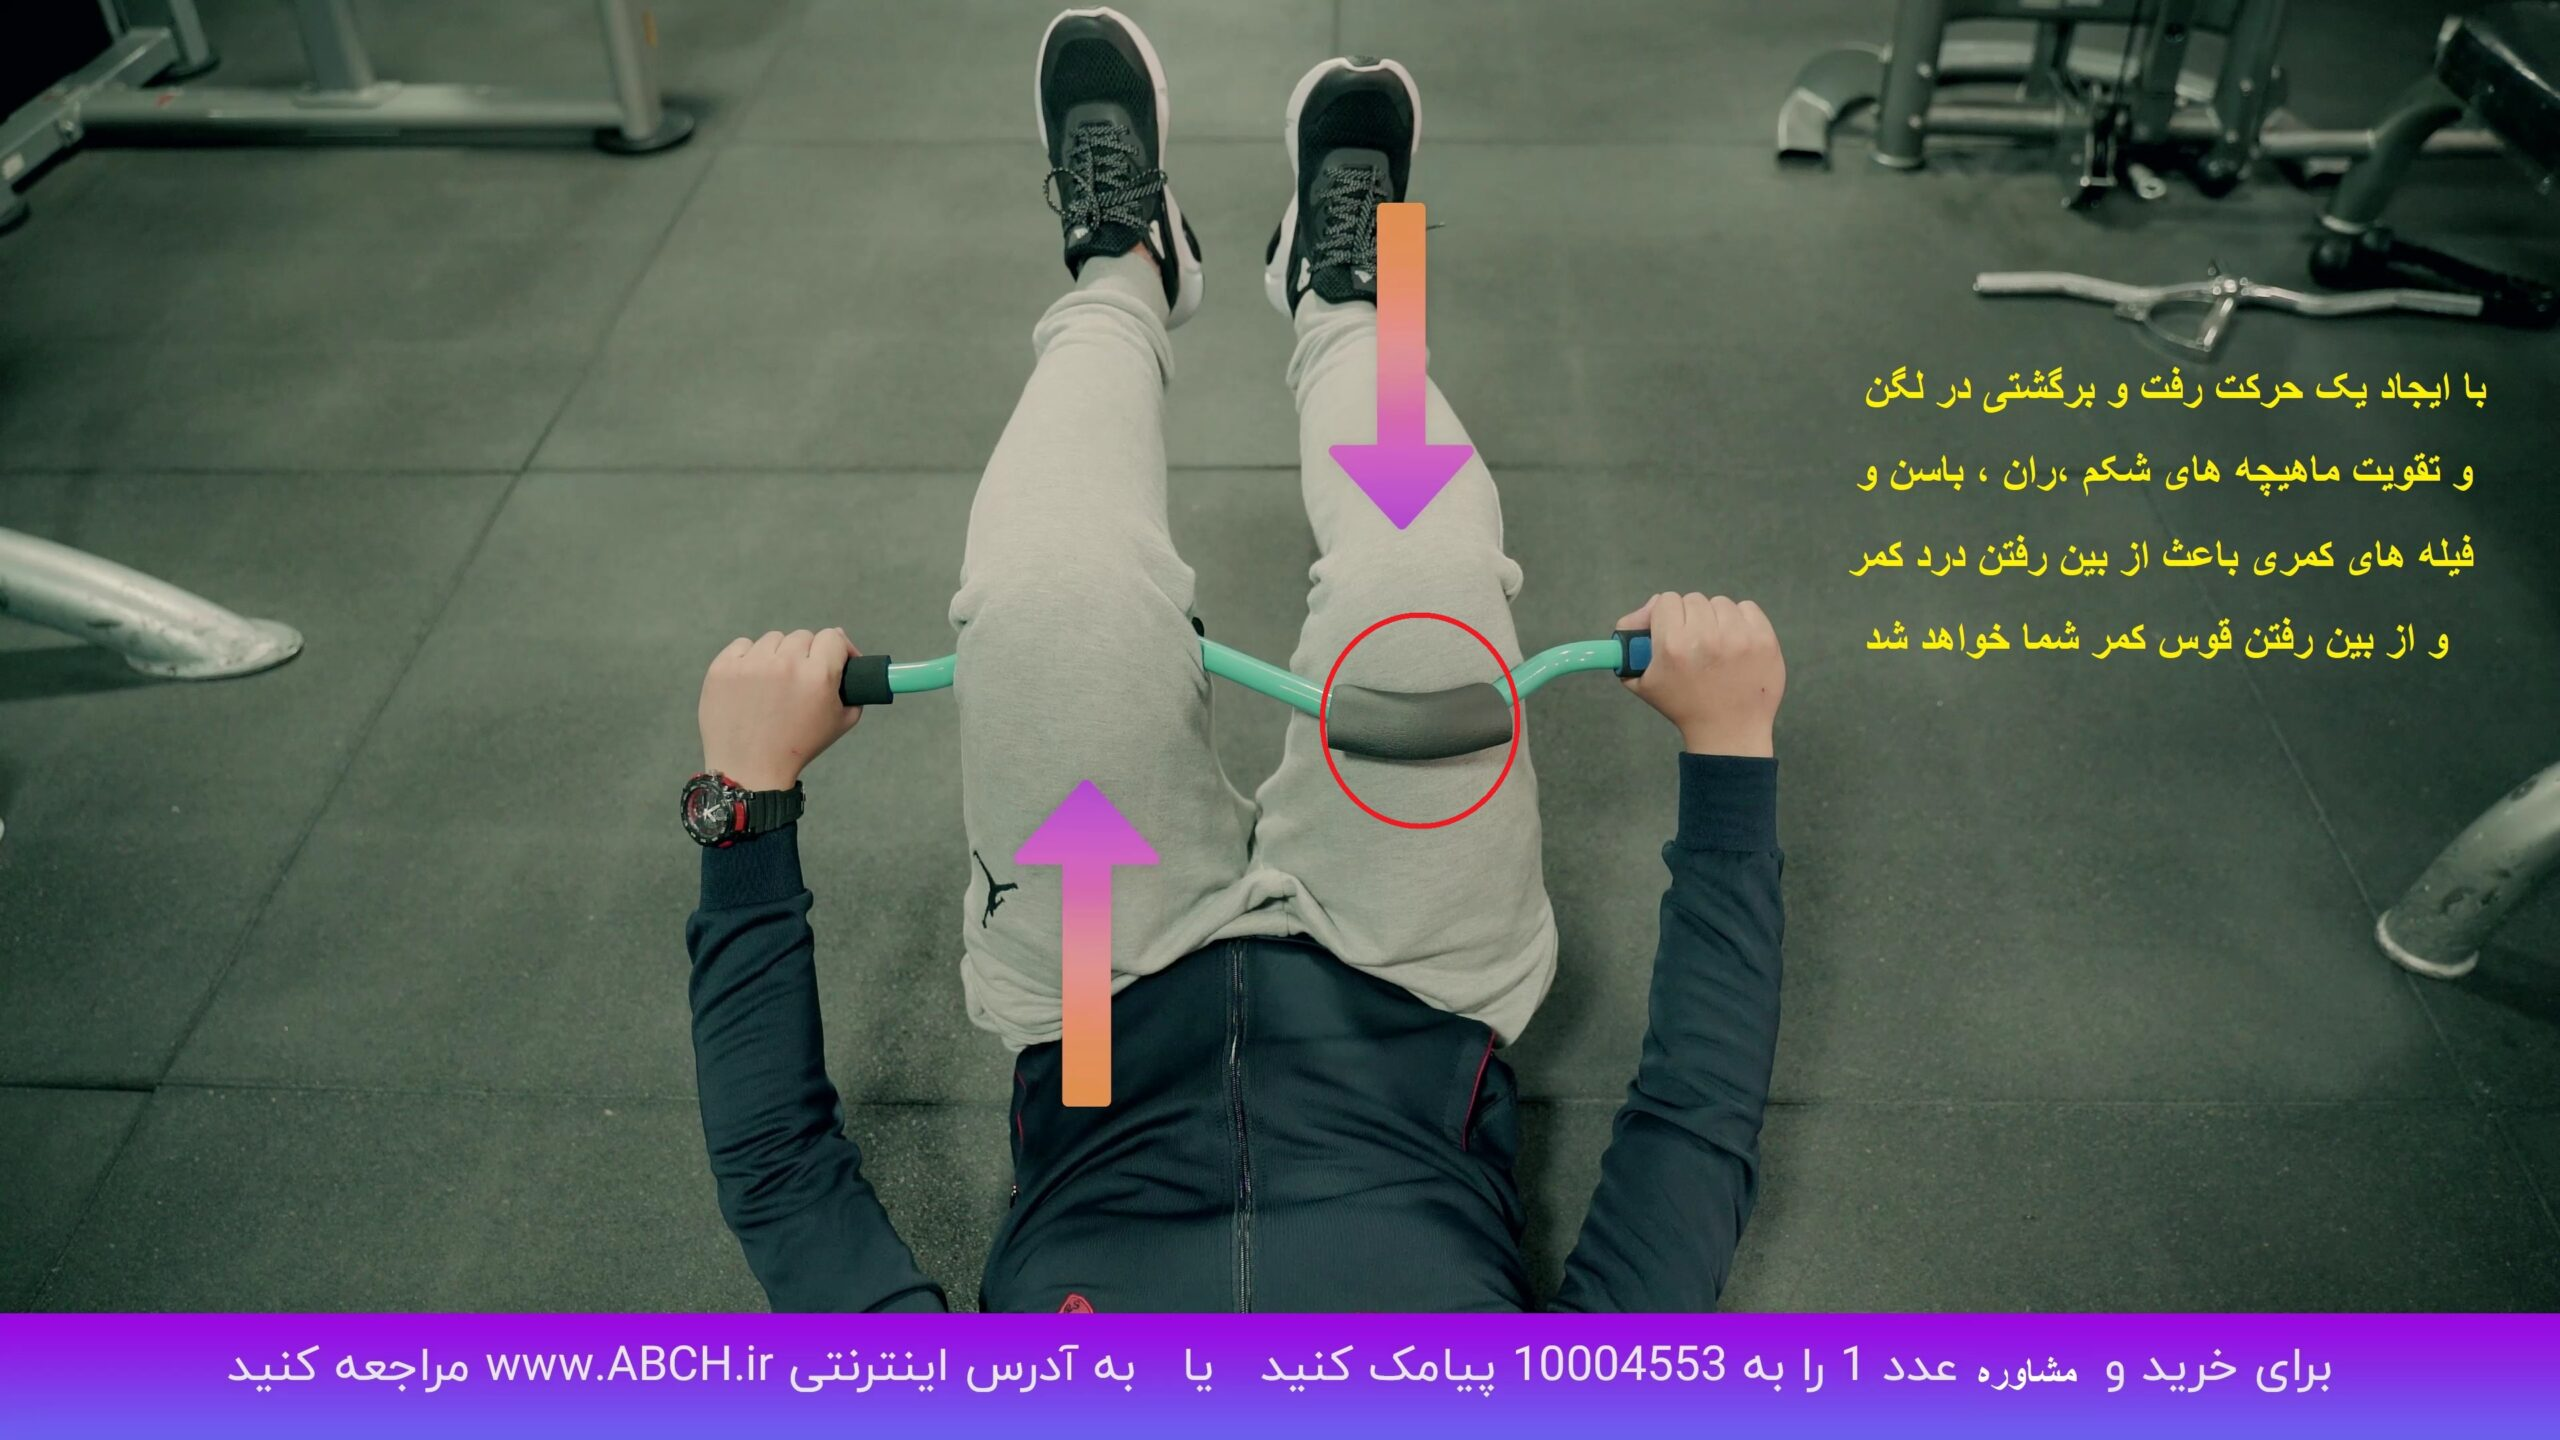 T1 T2 2160p0011392020 12 15 19 06 11 scaled - دستگاه قوس کمر -مدل t2